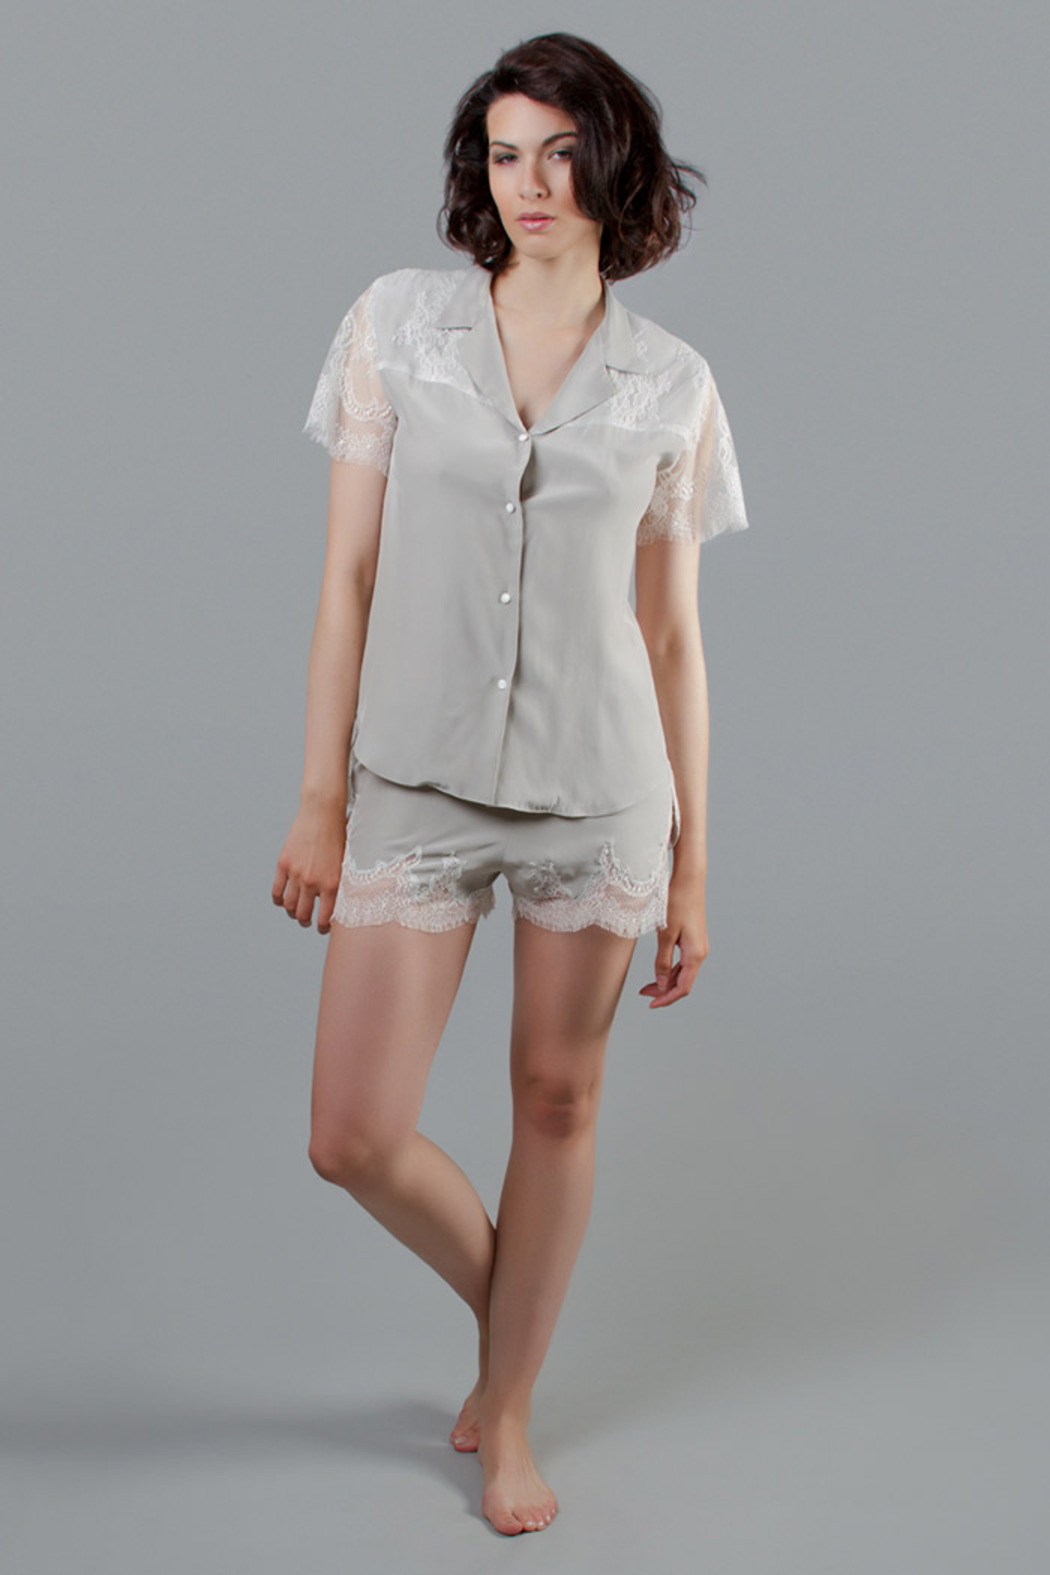 b564e6d77f Ari Dein Hotel Demi Lace Pajama Top from Pennsylvania by byLangley ...